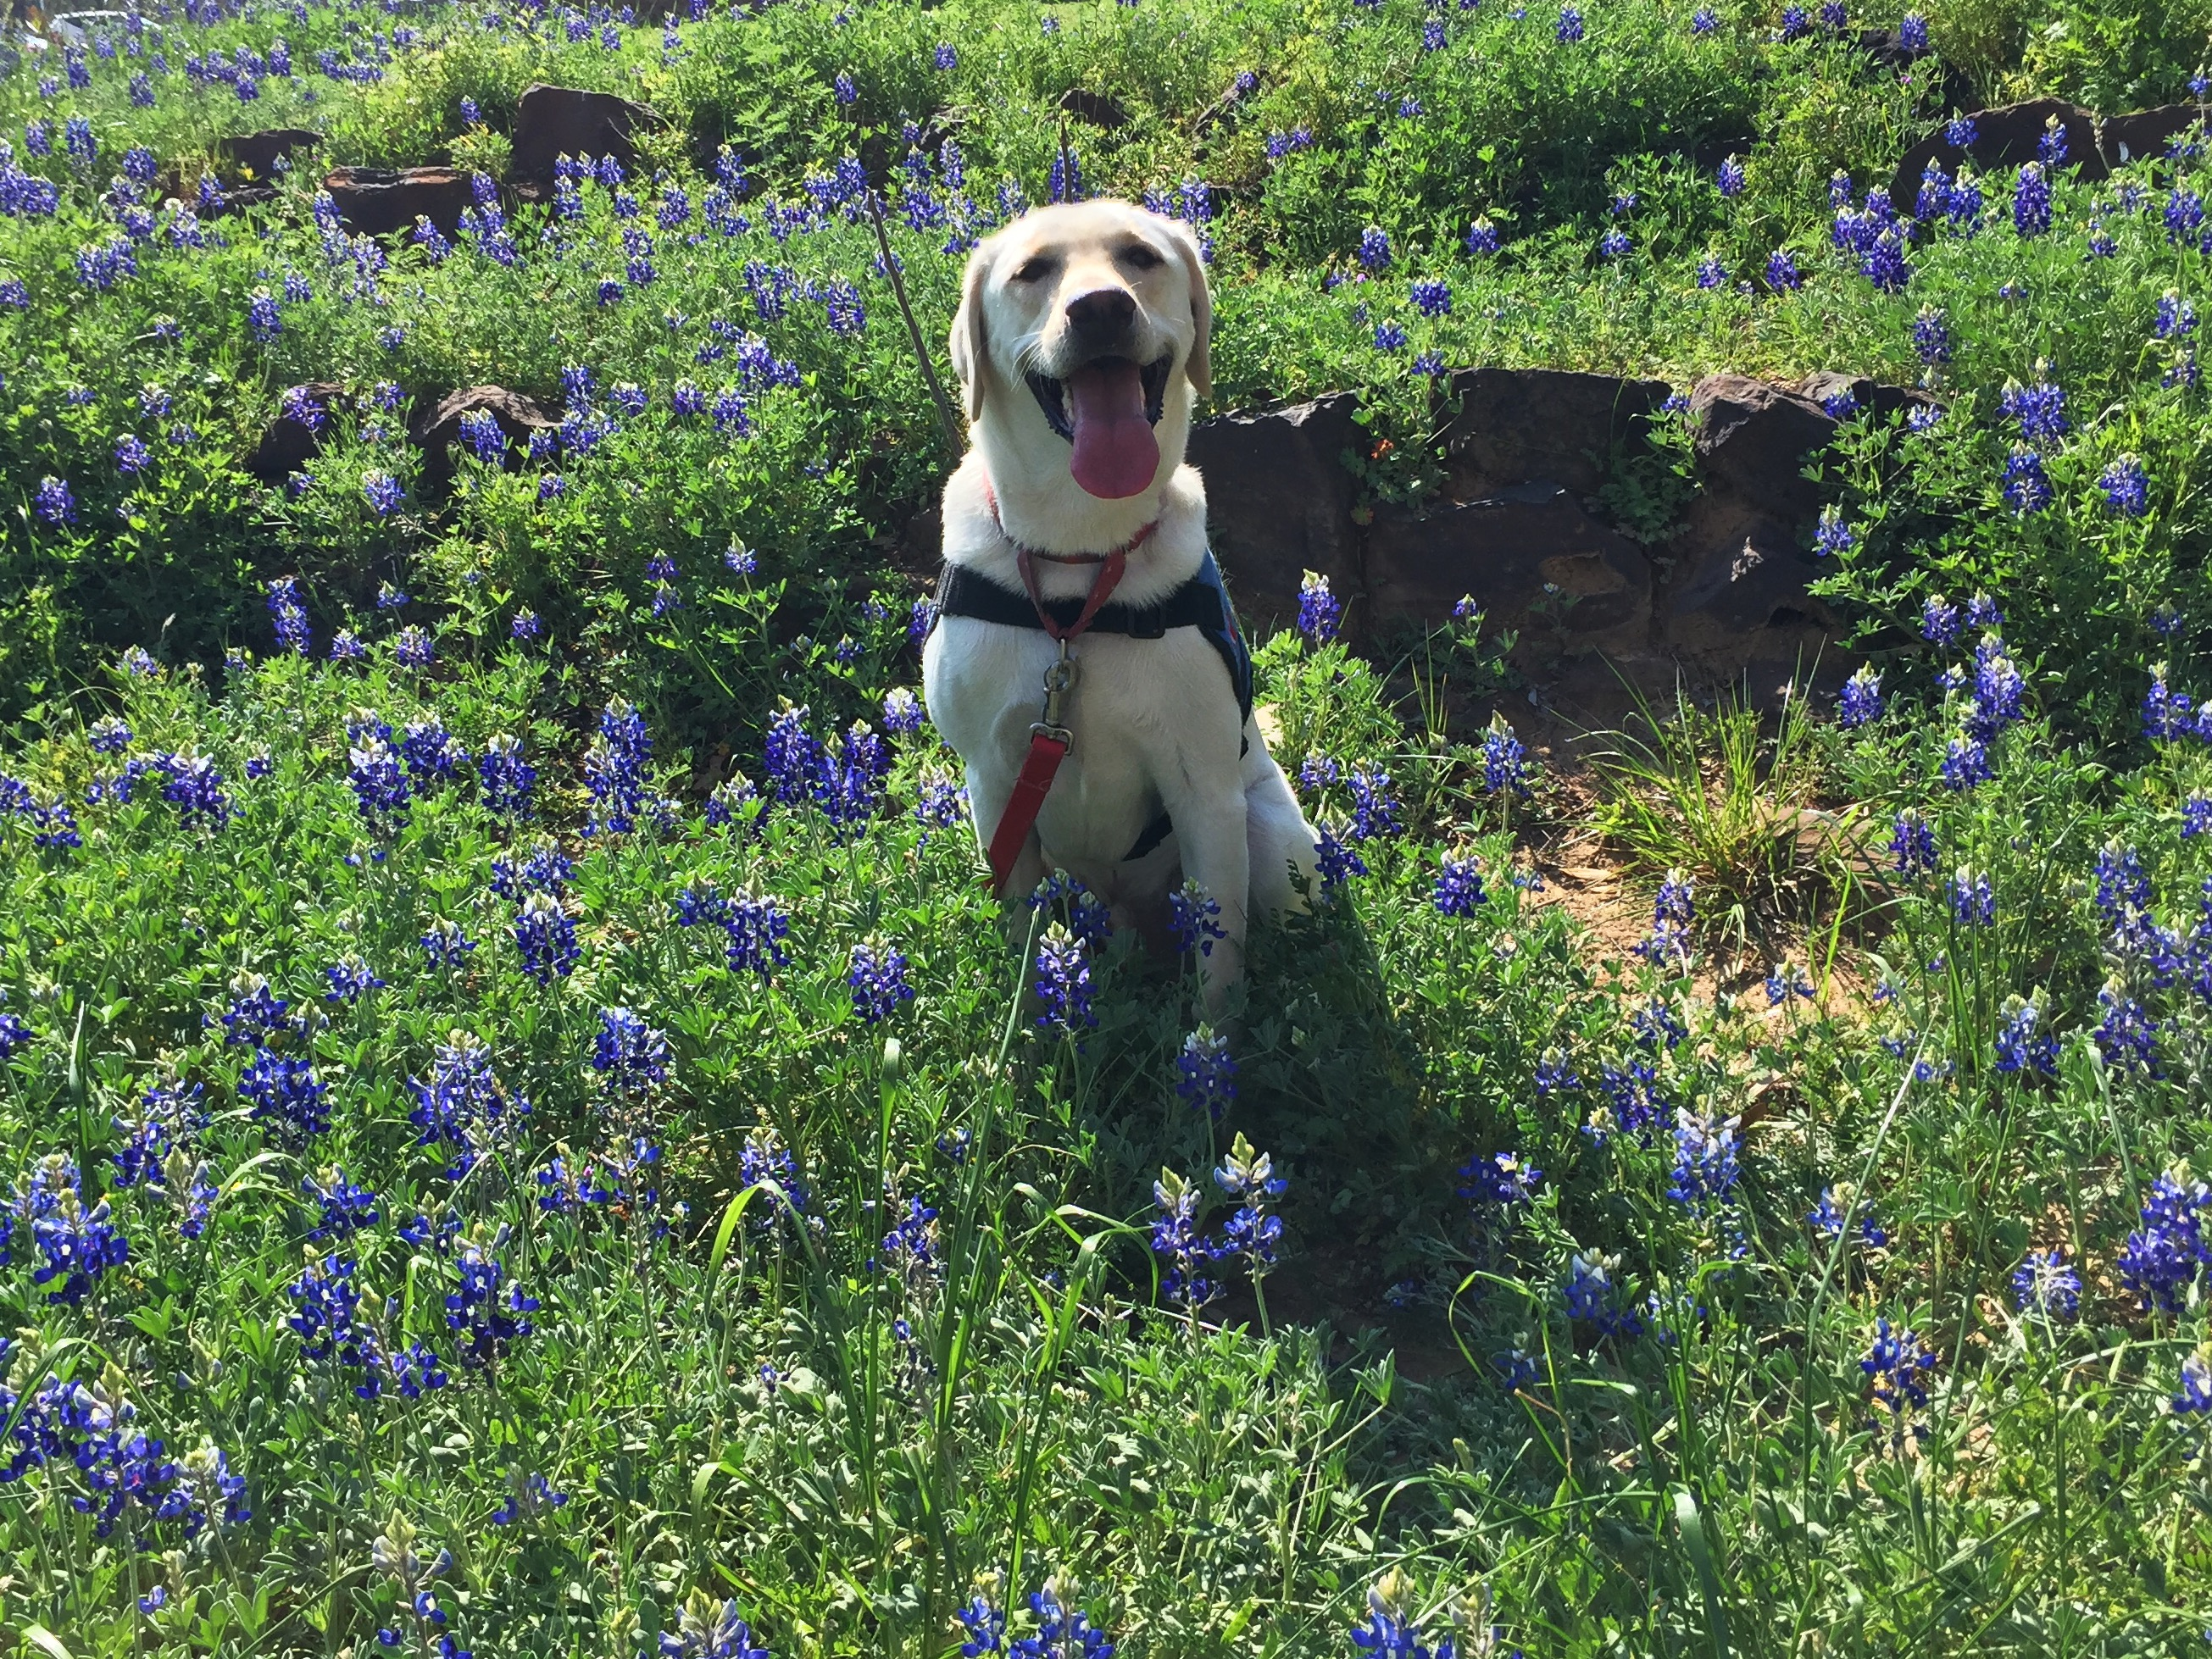 Drill Bit the Labrador retriever, posing in the bluebonnets